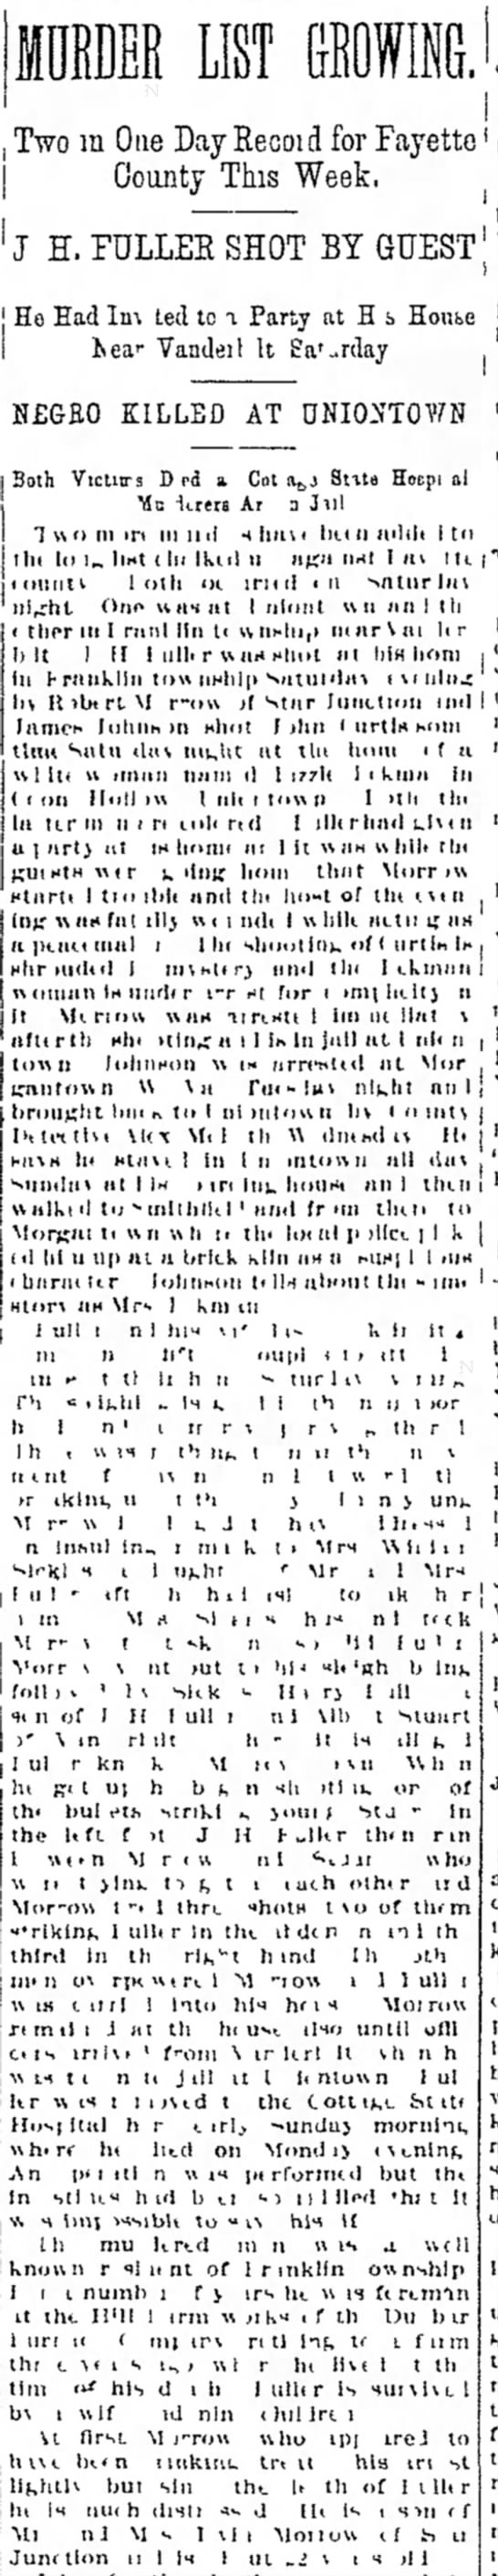 Shooting J H Fuller reported 2/21/1902 The Daily Courier  -